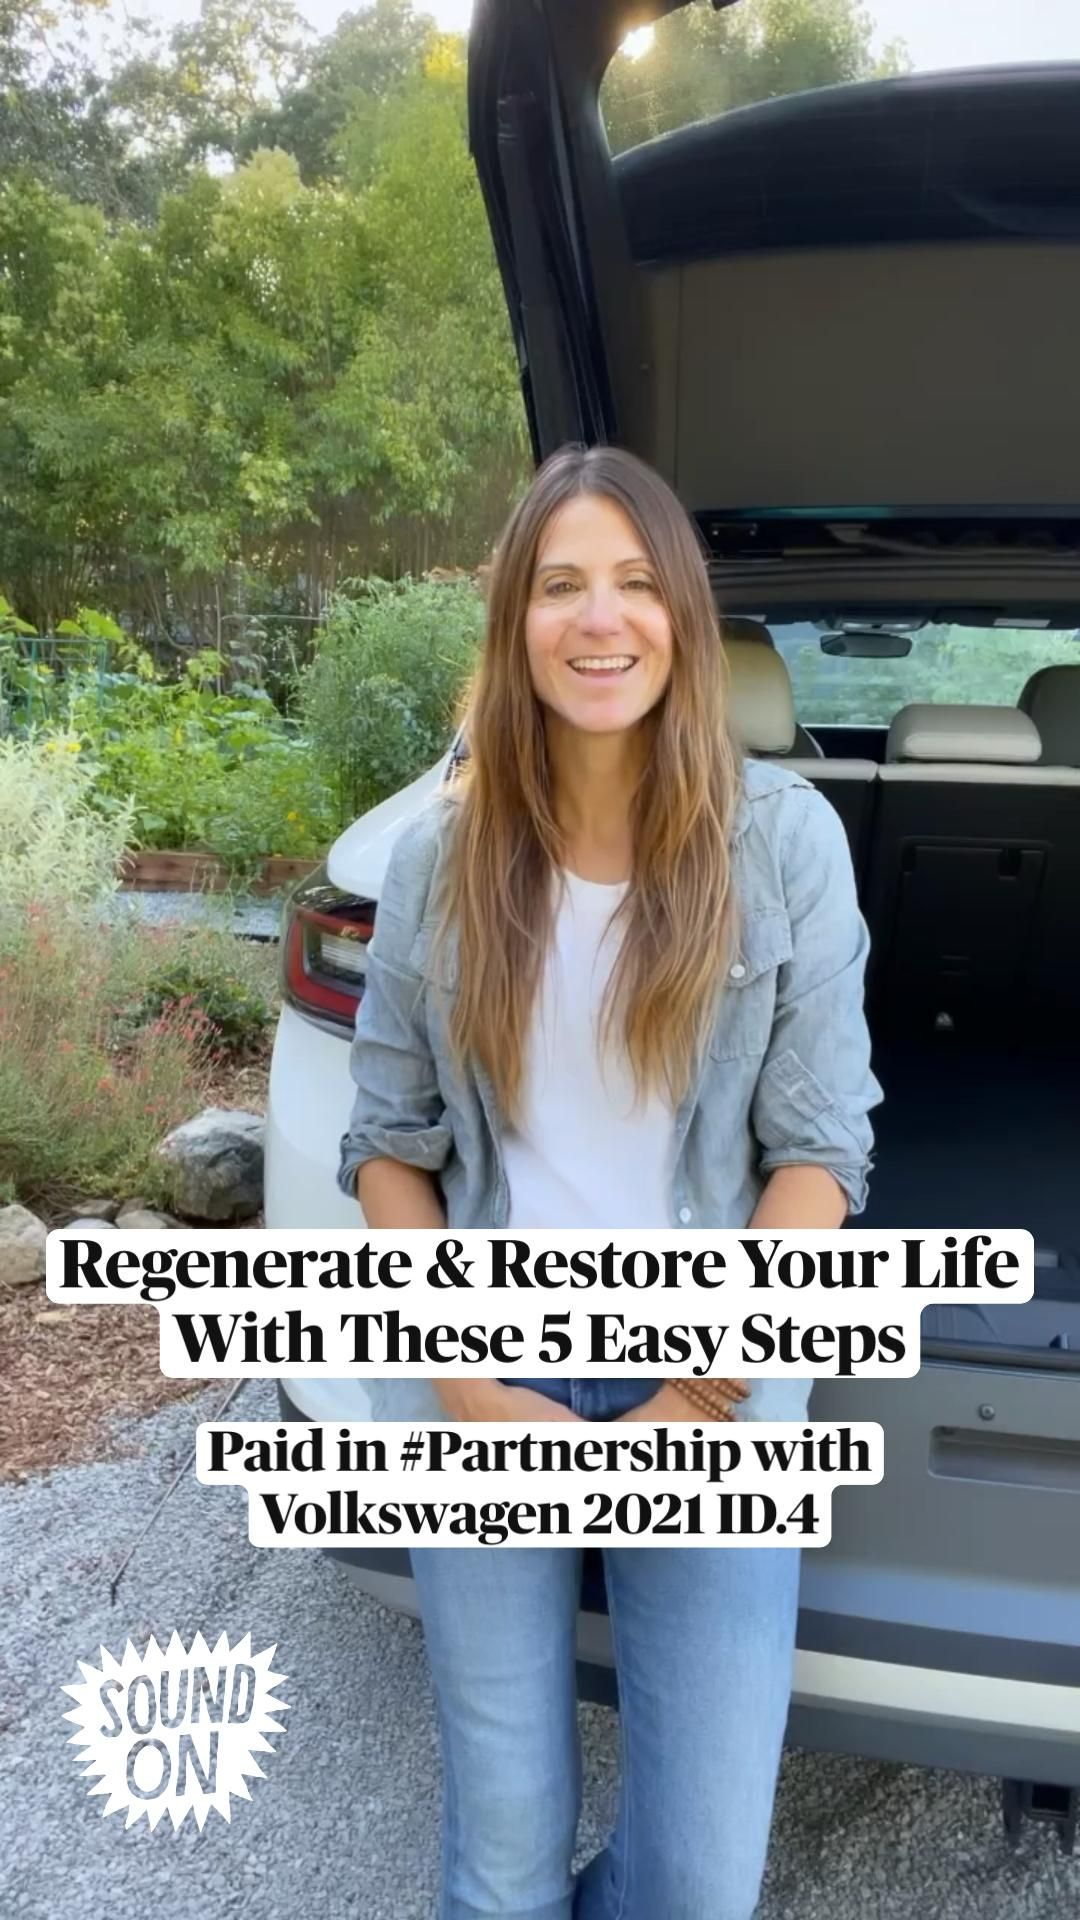 Regenerate & Restore Your Life With these 5 Easy Steps